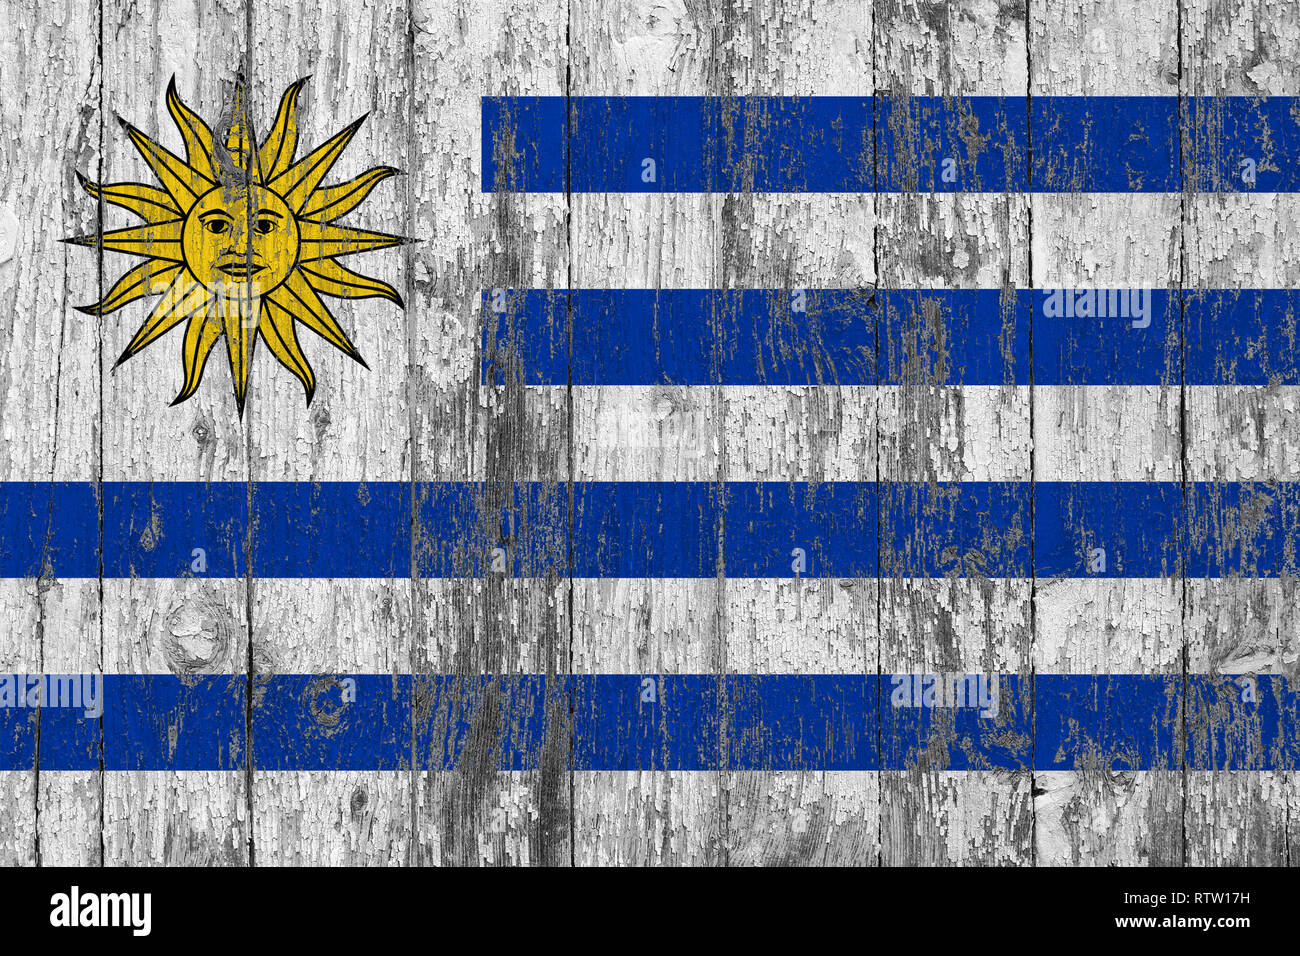 Flag of Uruguay painted on worn out wooden texture background. - Stock Image